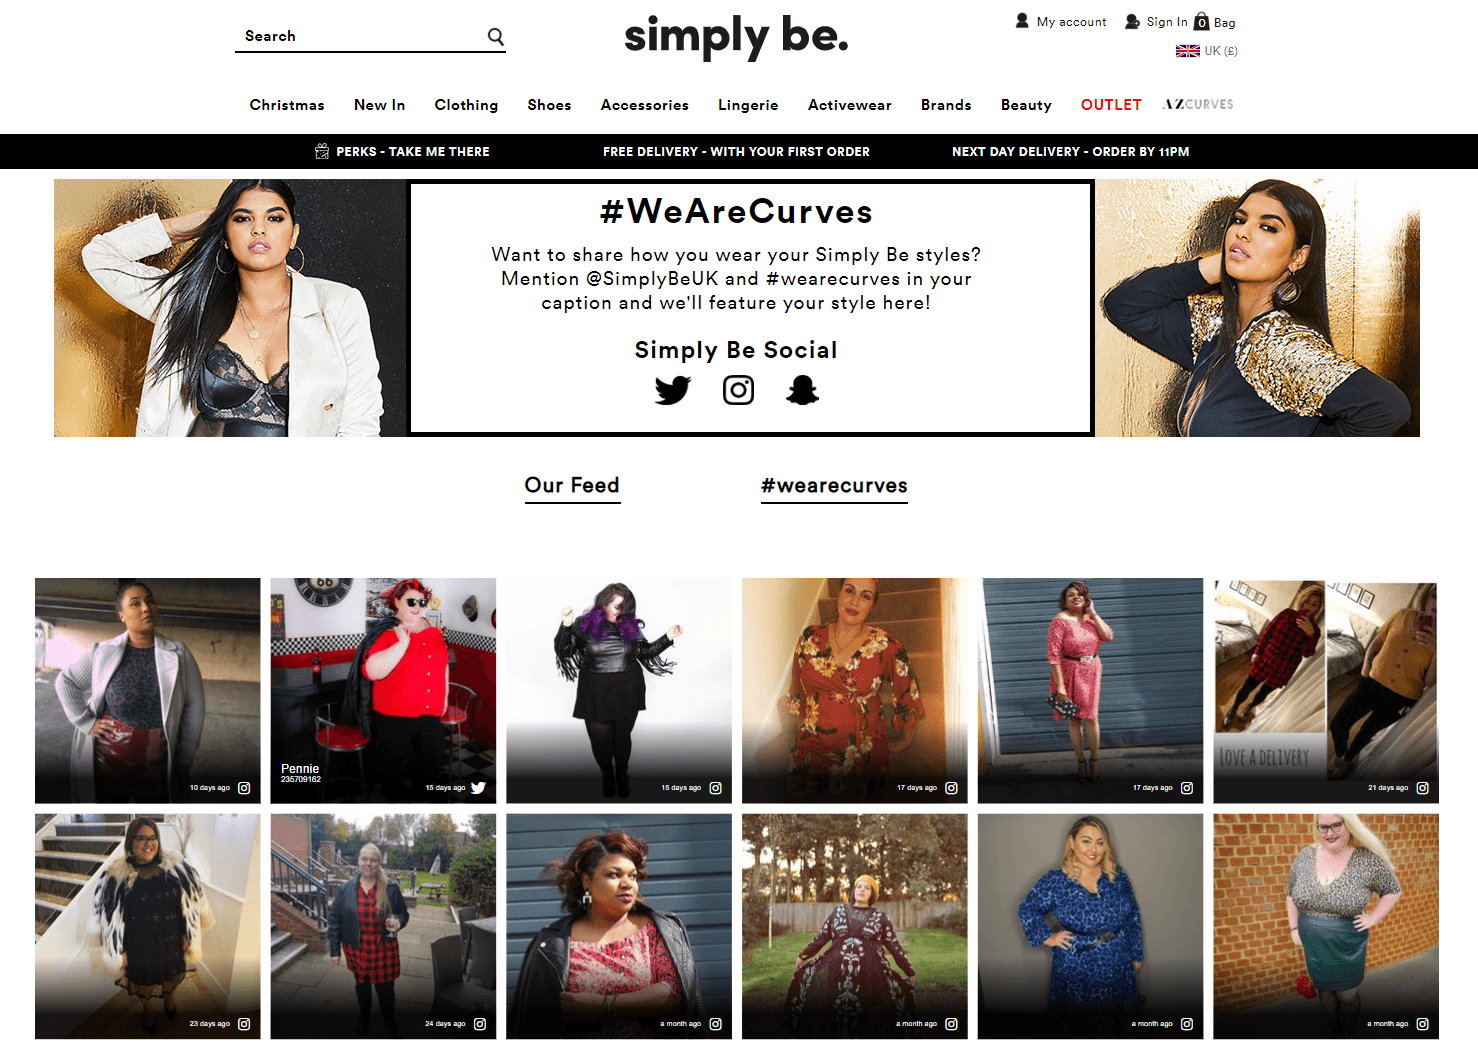 Plus-size womenswear retailer Simply Be asks its loyalty program members to post images wearing their favorite looks. Seeing their fellow customers enjoy Simply Be's products feels authentic for buyers, which helps to spread word-of-mouth.